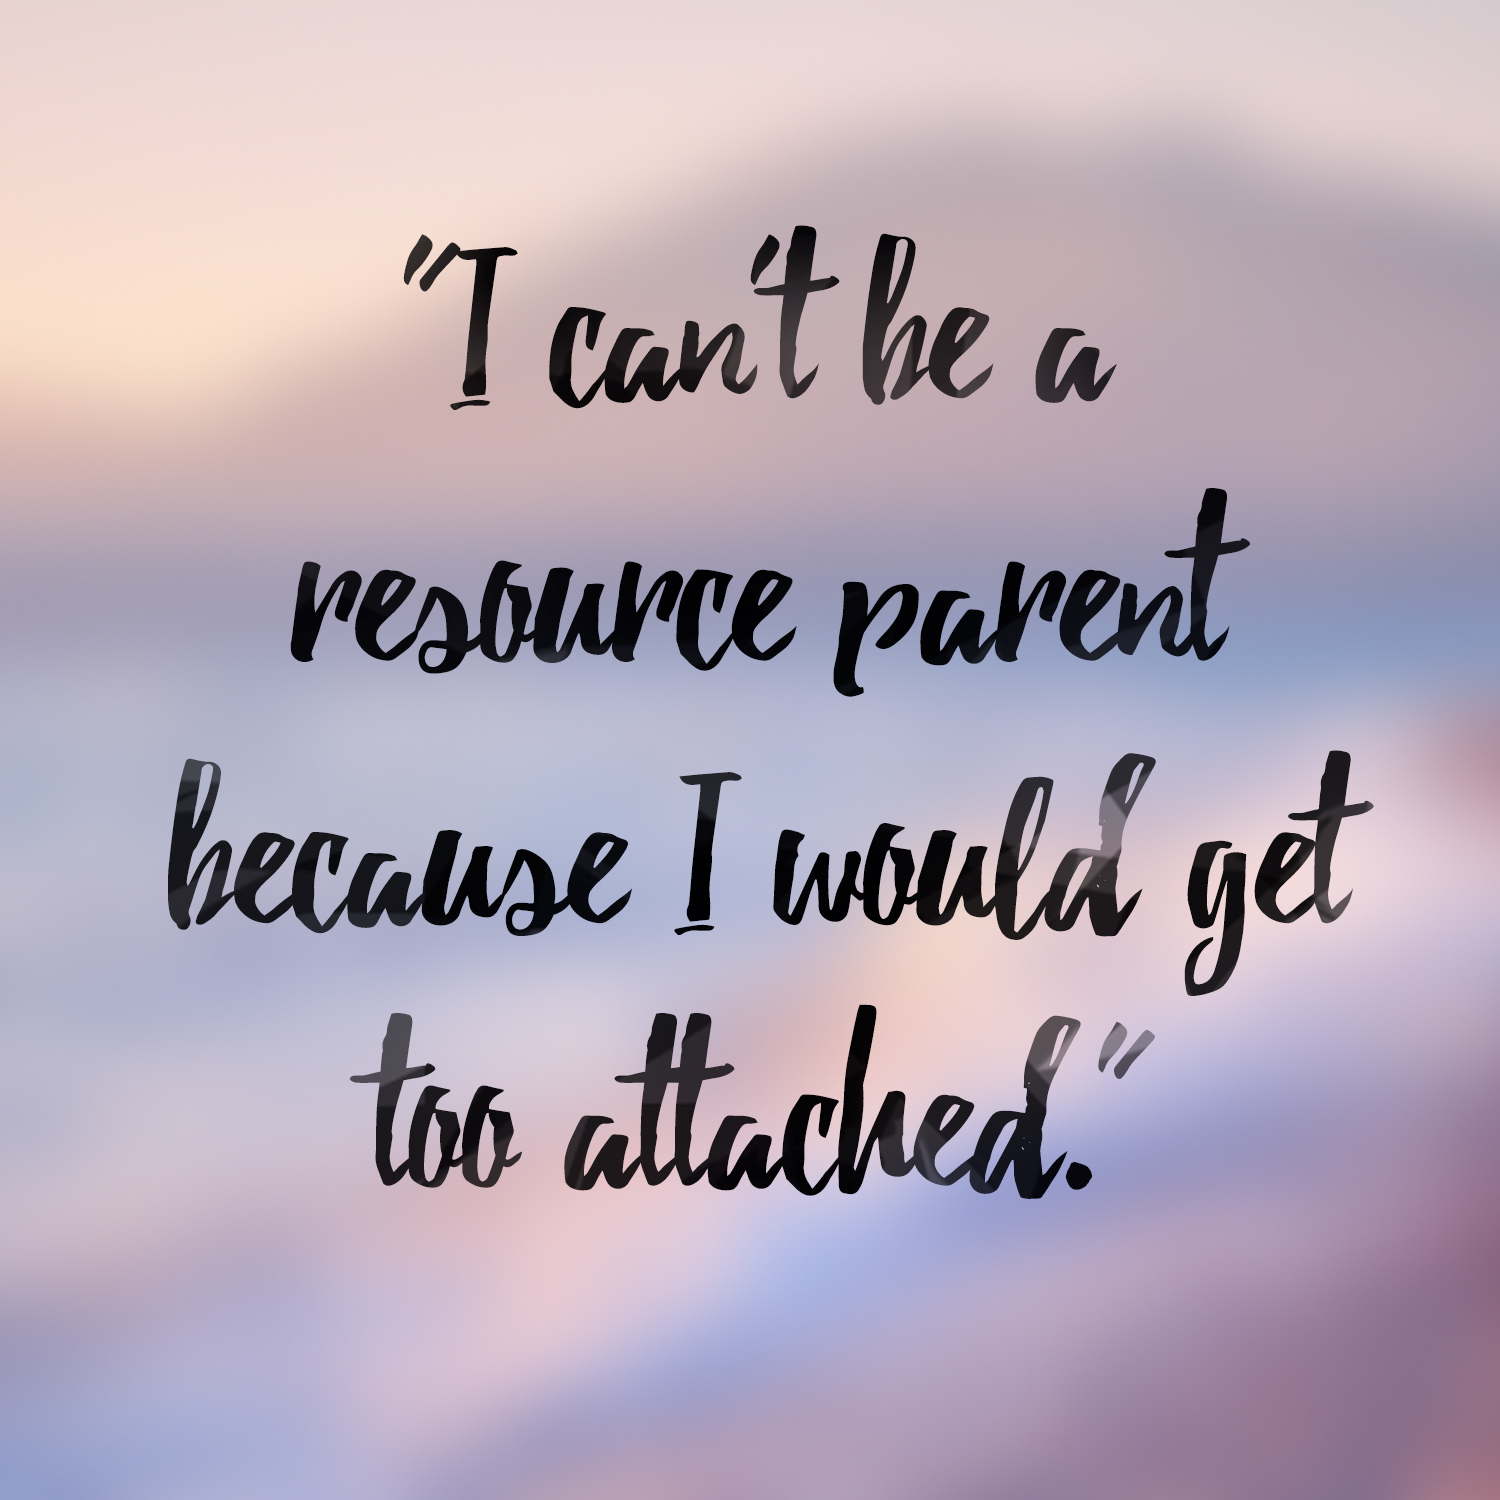 Myth - I can't be a resource parent because I would get too attached.